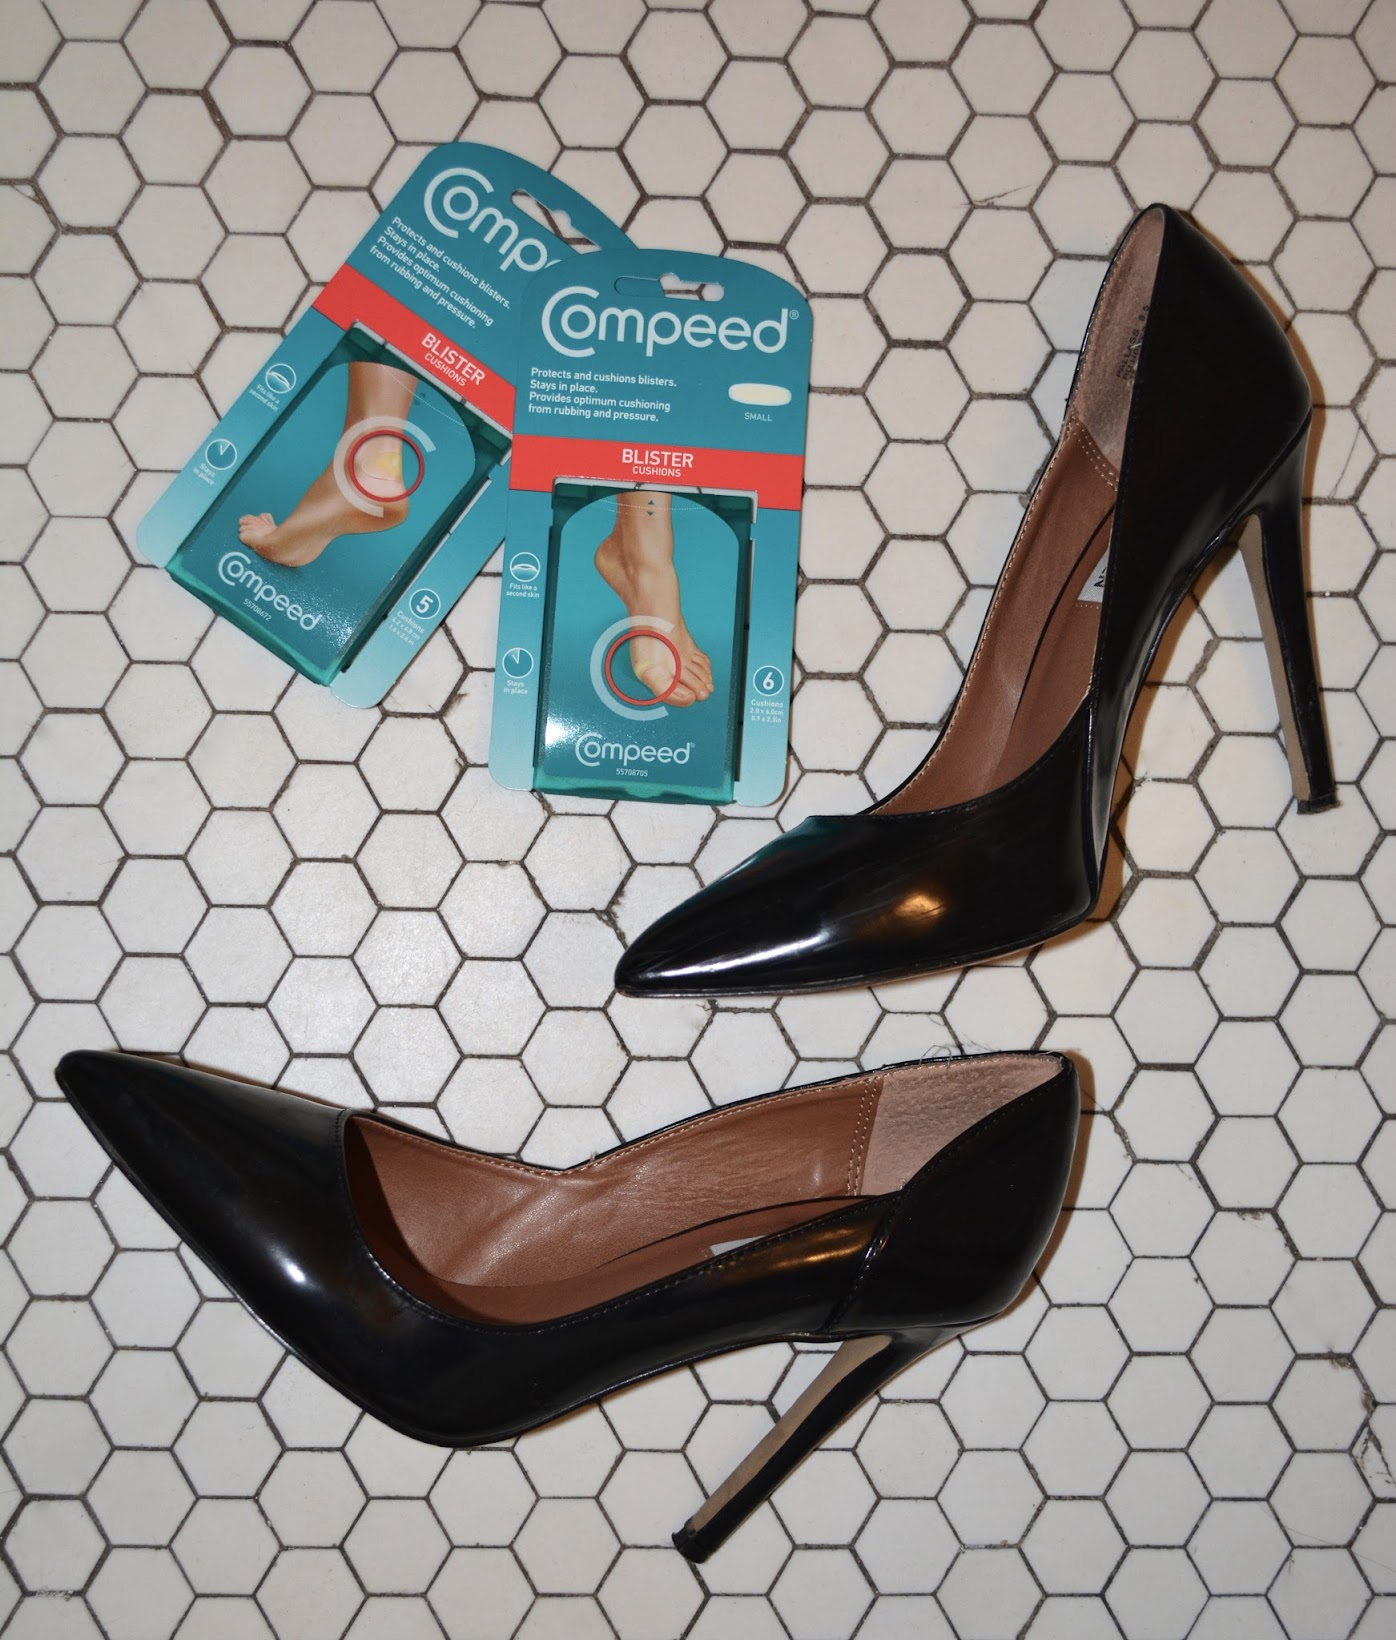 Compeed Blister Cushions, Compeed US, Apósitos de Ampollas Compeed, Compeed  blister cushions, blisters, ampollas, Chicago, blister solutions, Compeed at Walgreens, Walgreens, Compeed, Chicago blogger, bloguera latina, Latina blogger, no more blisters, adios ampollas, blister healer, heal blisters,